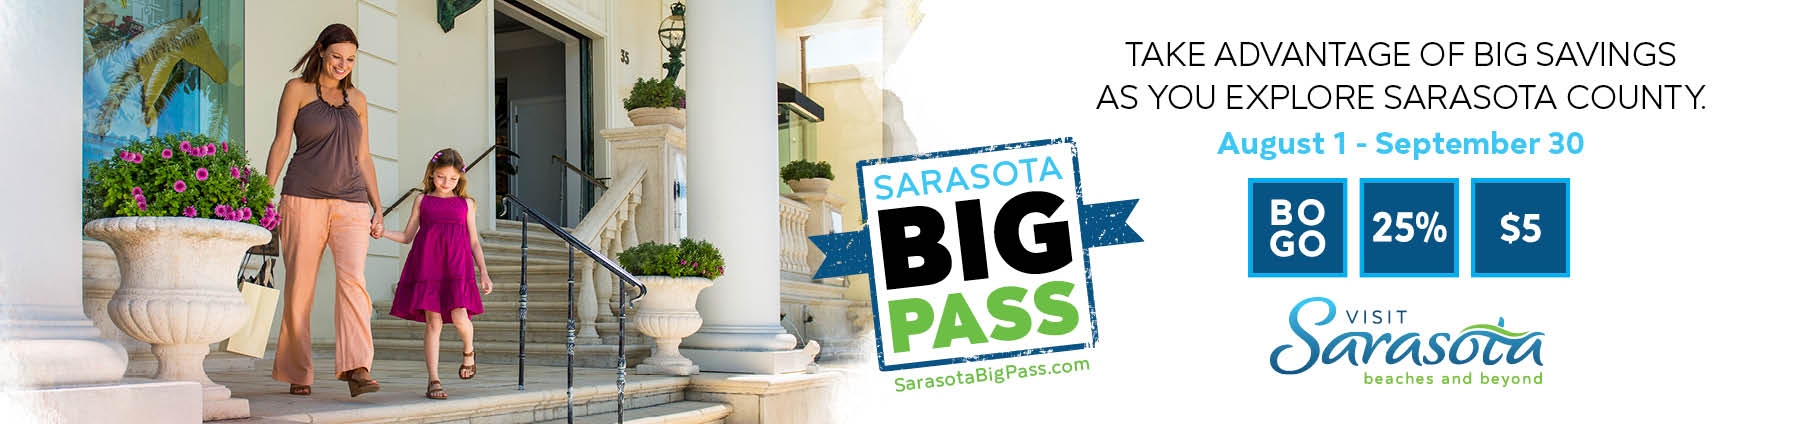 Sarasota Big Pass